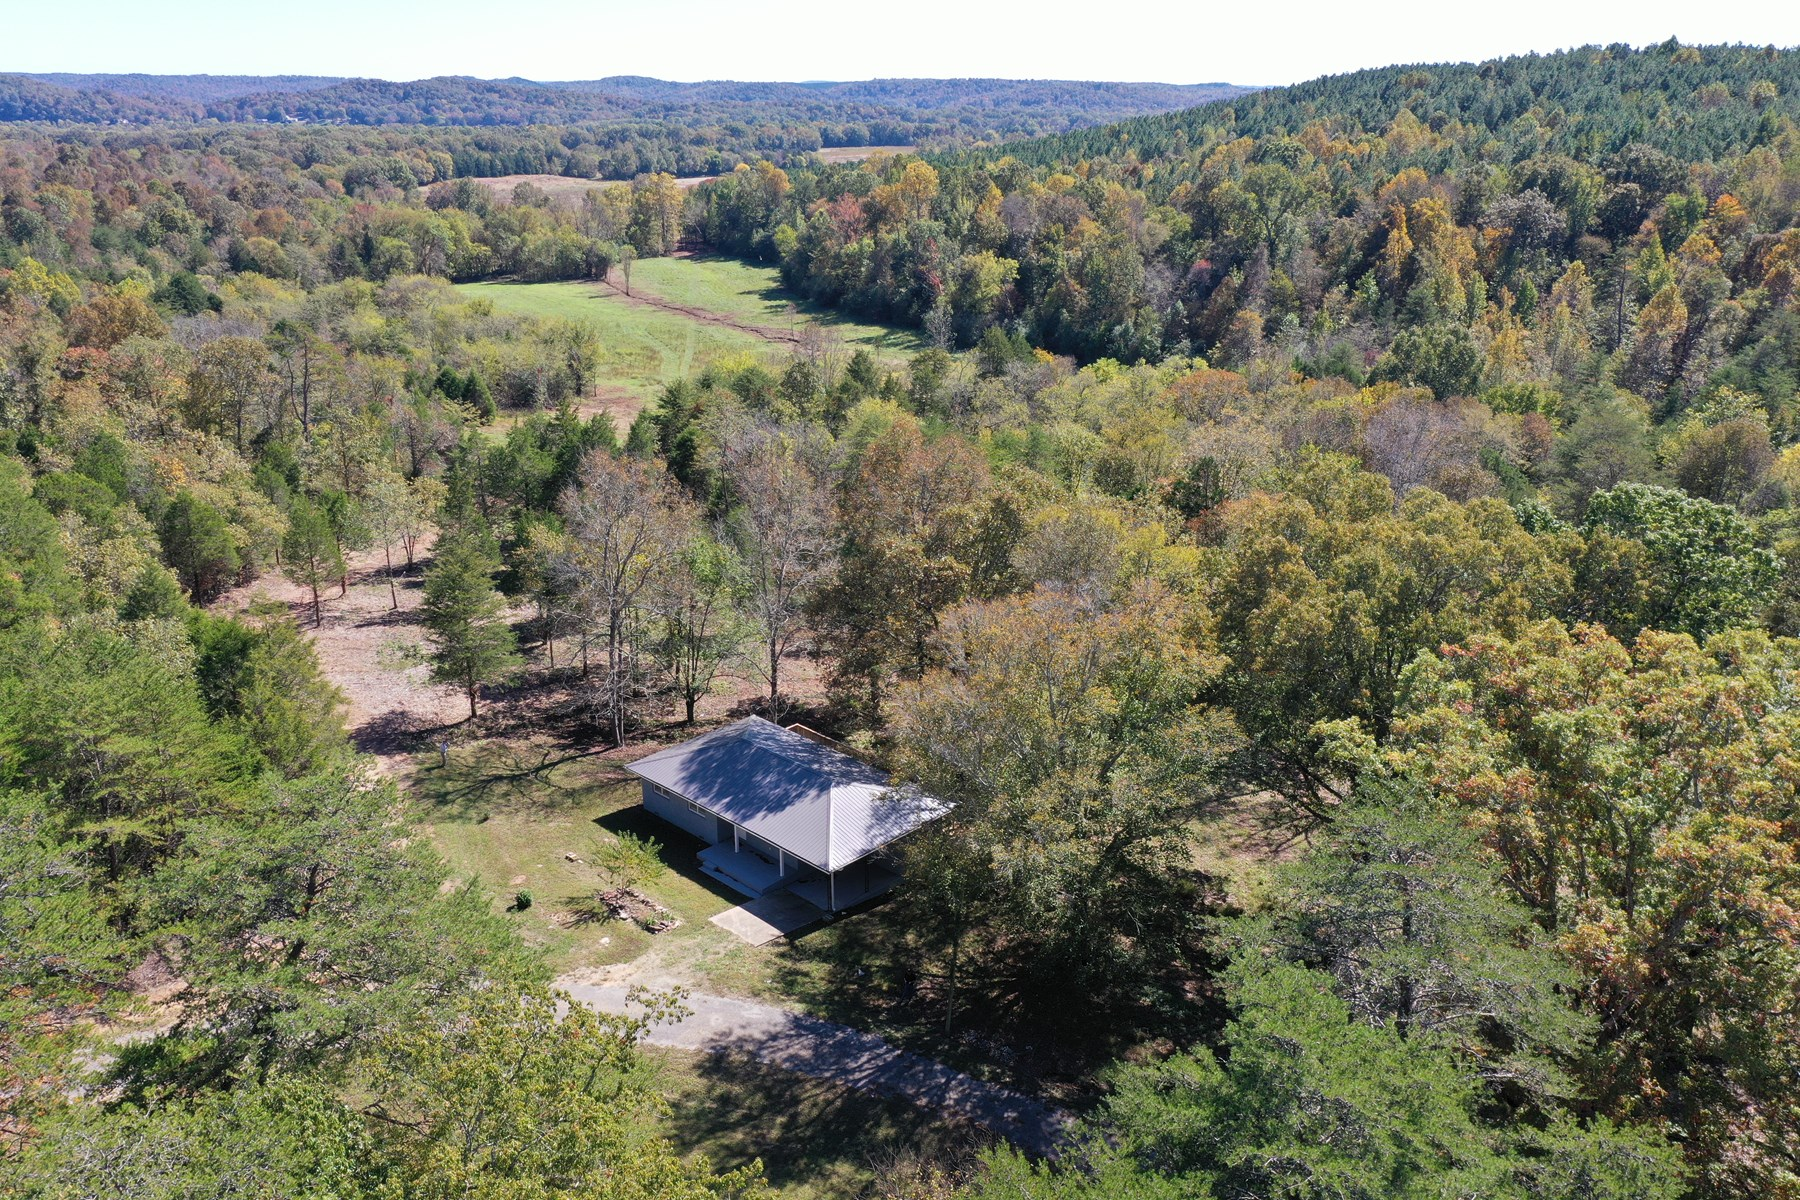 Tennessee Abandoned Mini Farm for sale with owner financing.